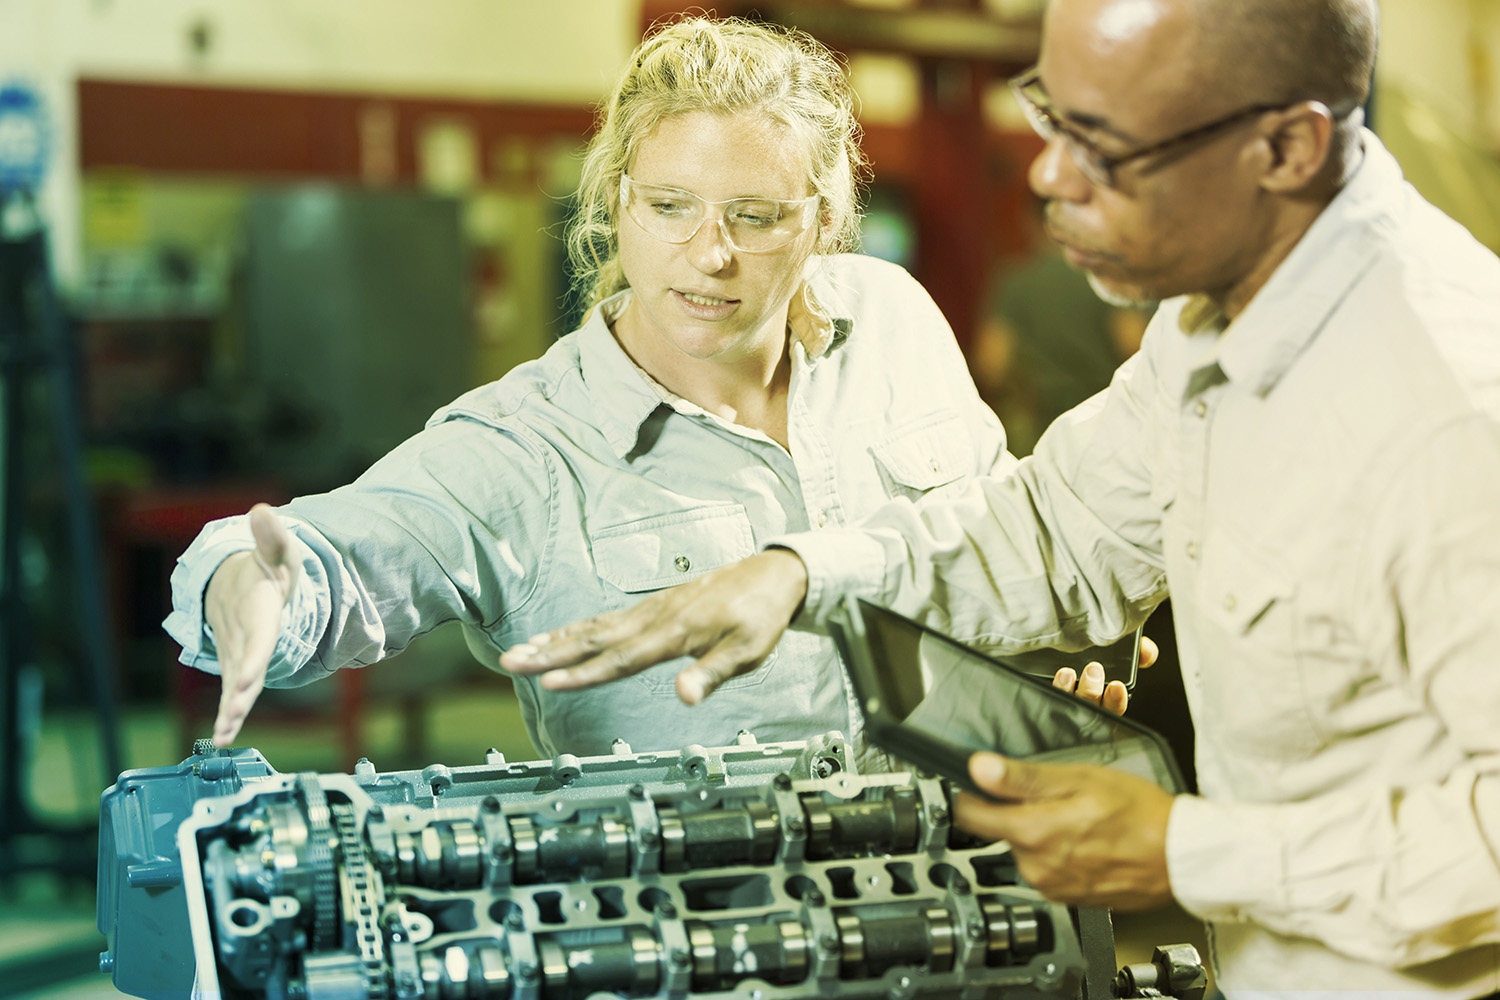 Two multi-ethnic mechanics working on a gasoline engine in a repair shop.  The African American man, in his 50s, is explaining to the trainee, a woman in her 20s, how to repair the engine.  He is holding a digital tablet.  The focus is on the woman